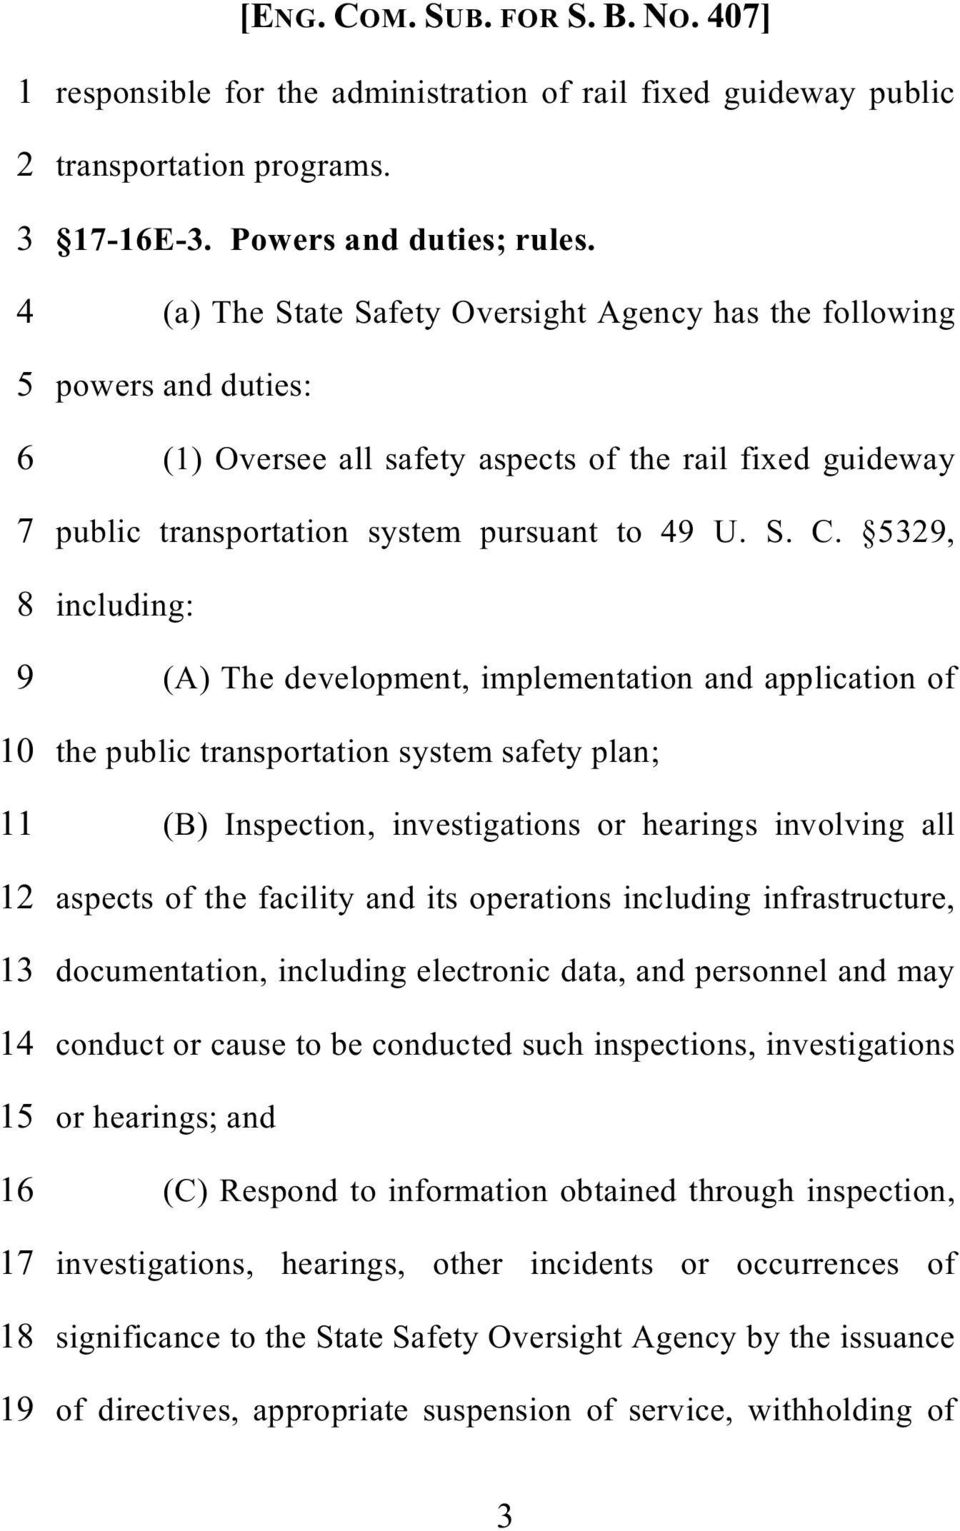 5329, 8 including: 9 (A) The development, implementation and application of 10 the public transportation system safety plan; 11 (B) Inspection, investigations or hearings involving all 12 aspects of